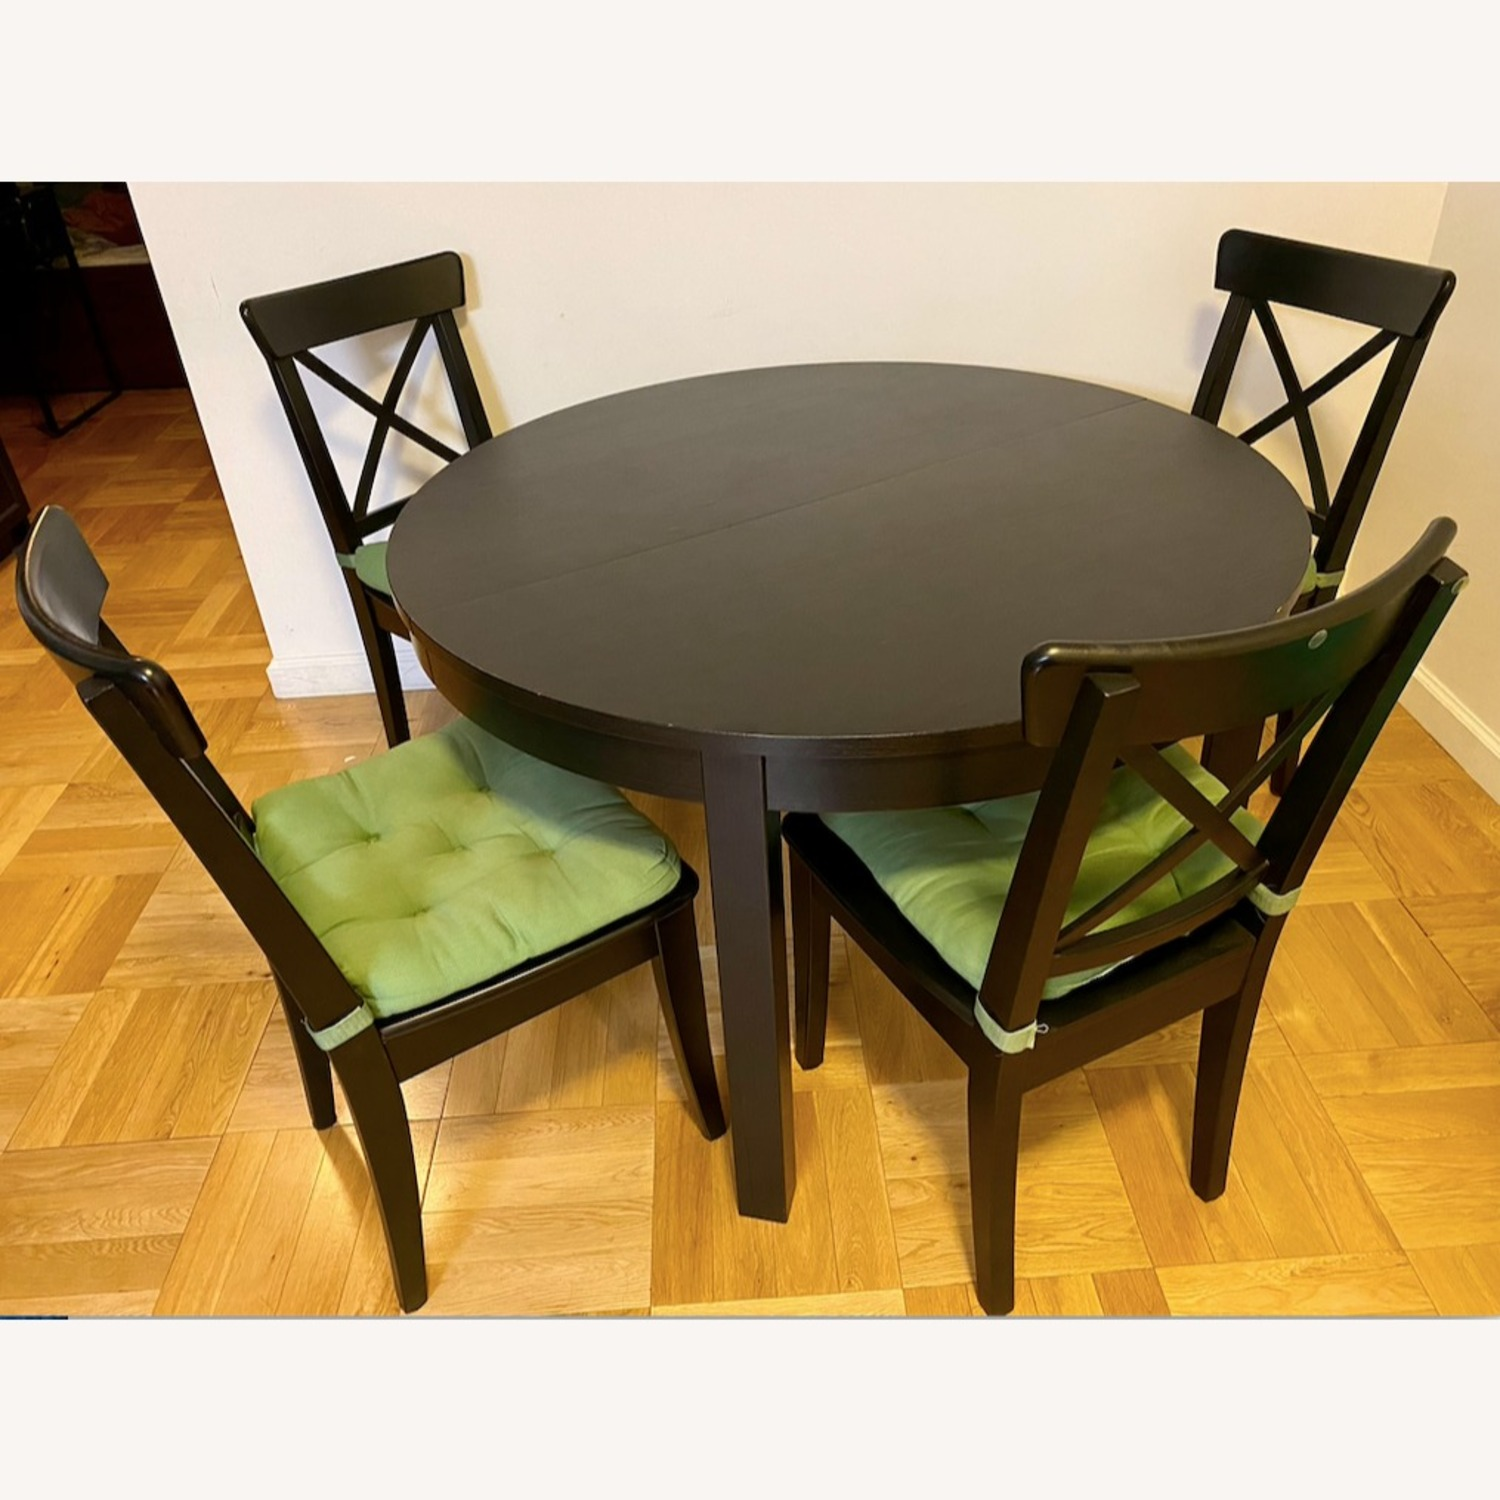 IKEA Dining Set - BJURSTA Table with INGOLF Chairs - image-4